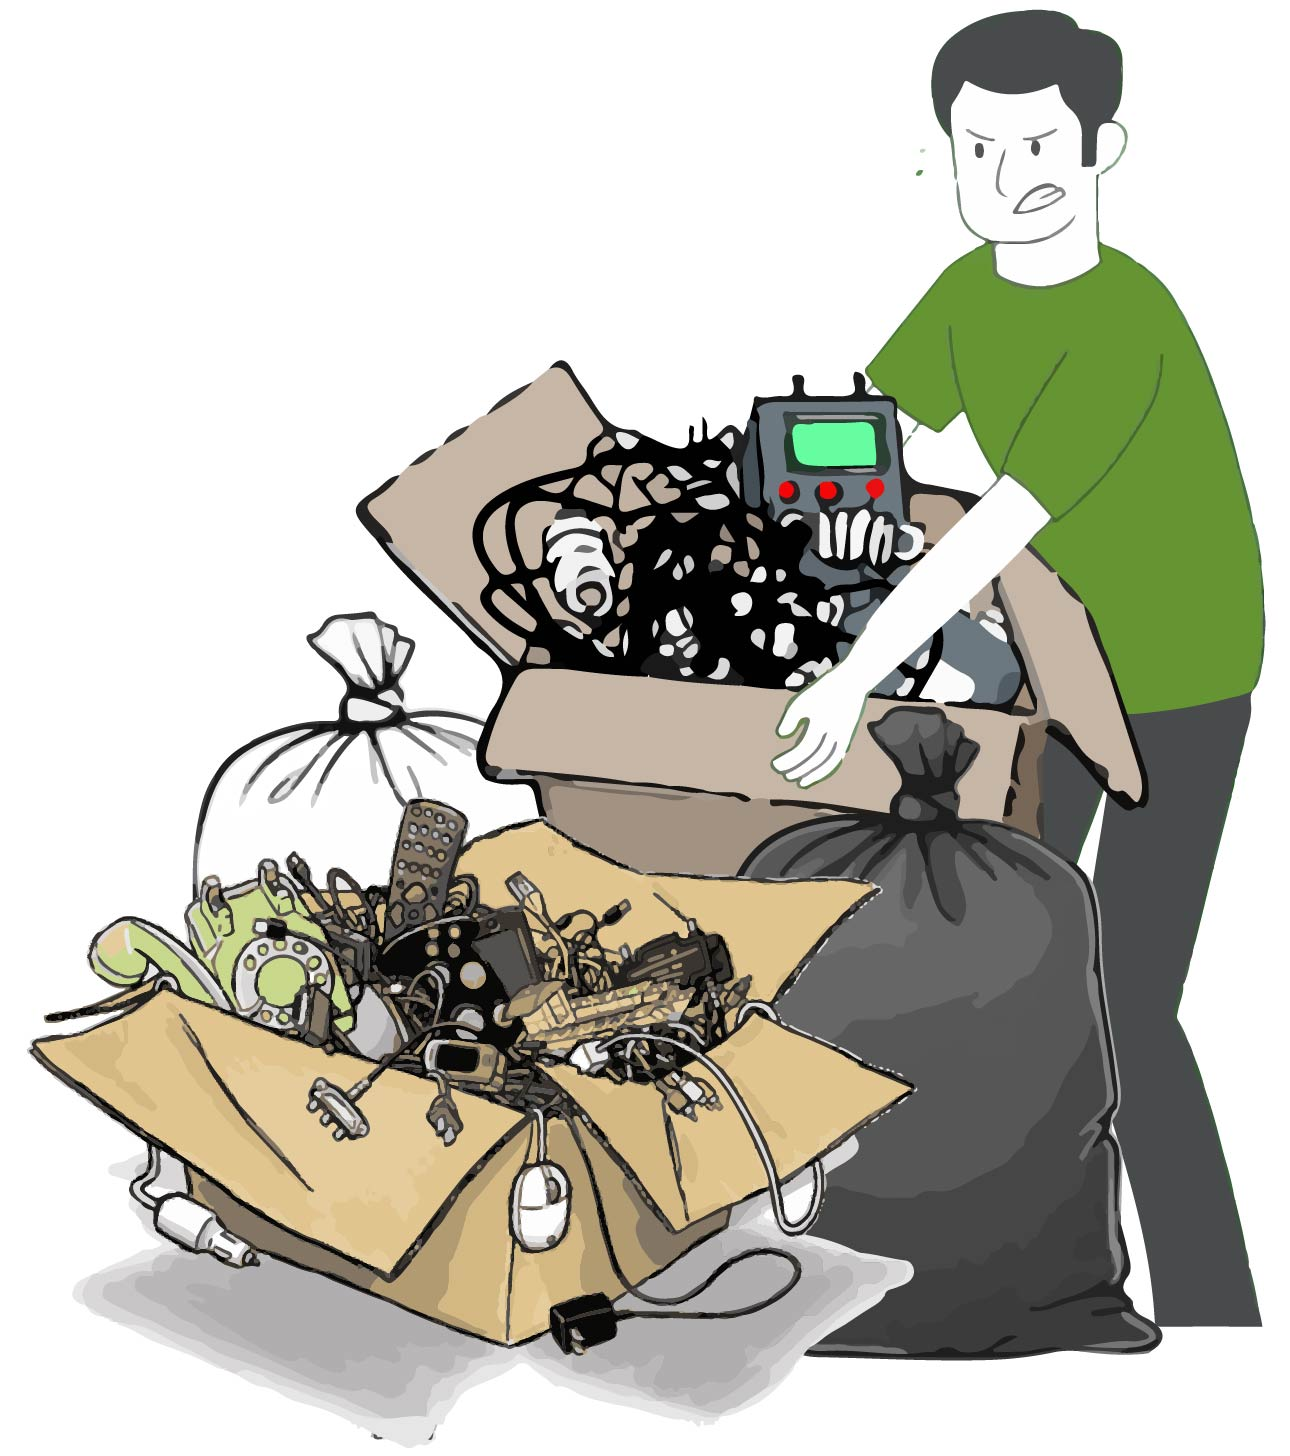 Affordable Junk Removal Services in Ashland, NE